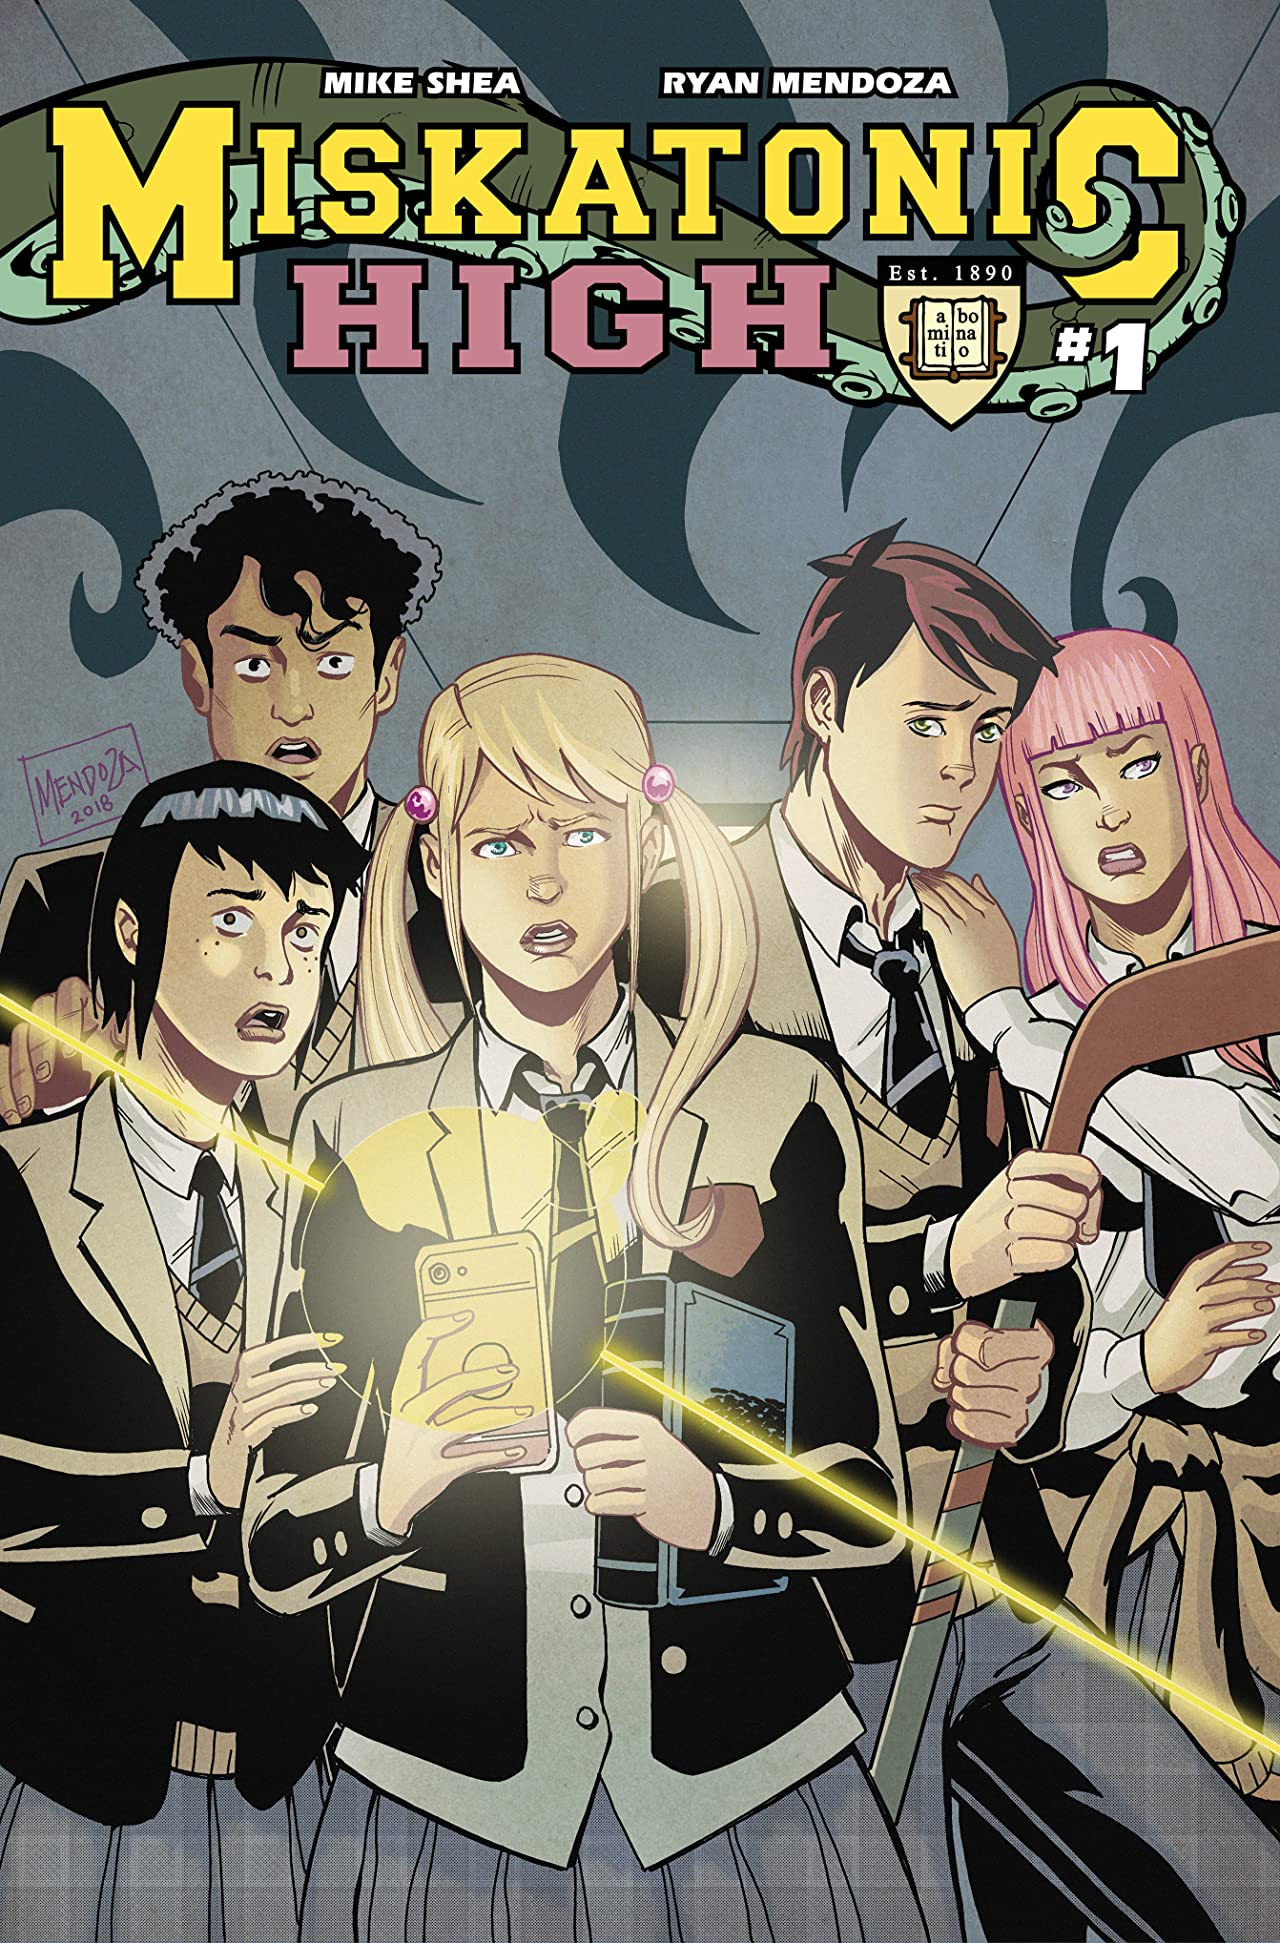 Miskatonic High #1